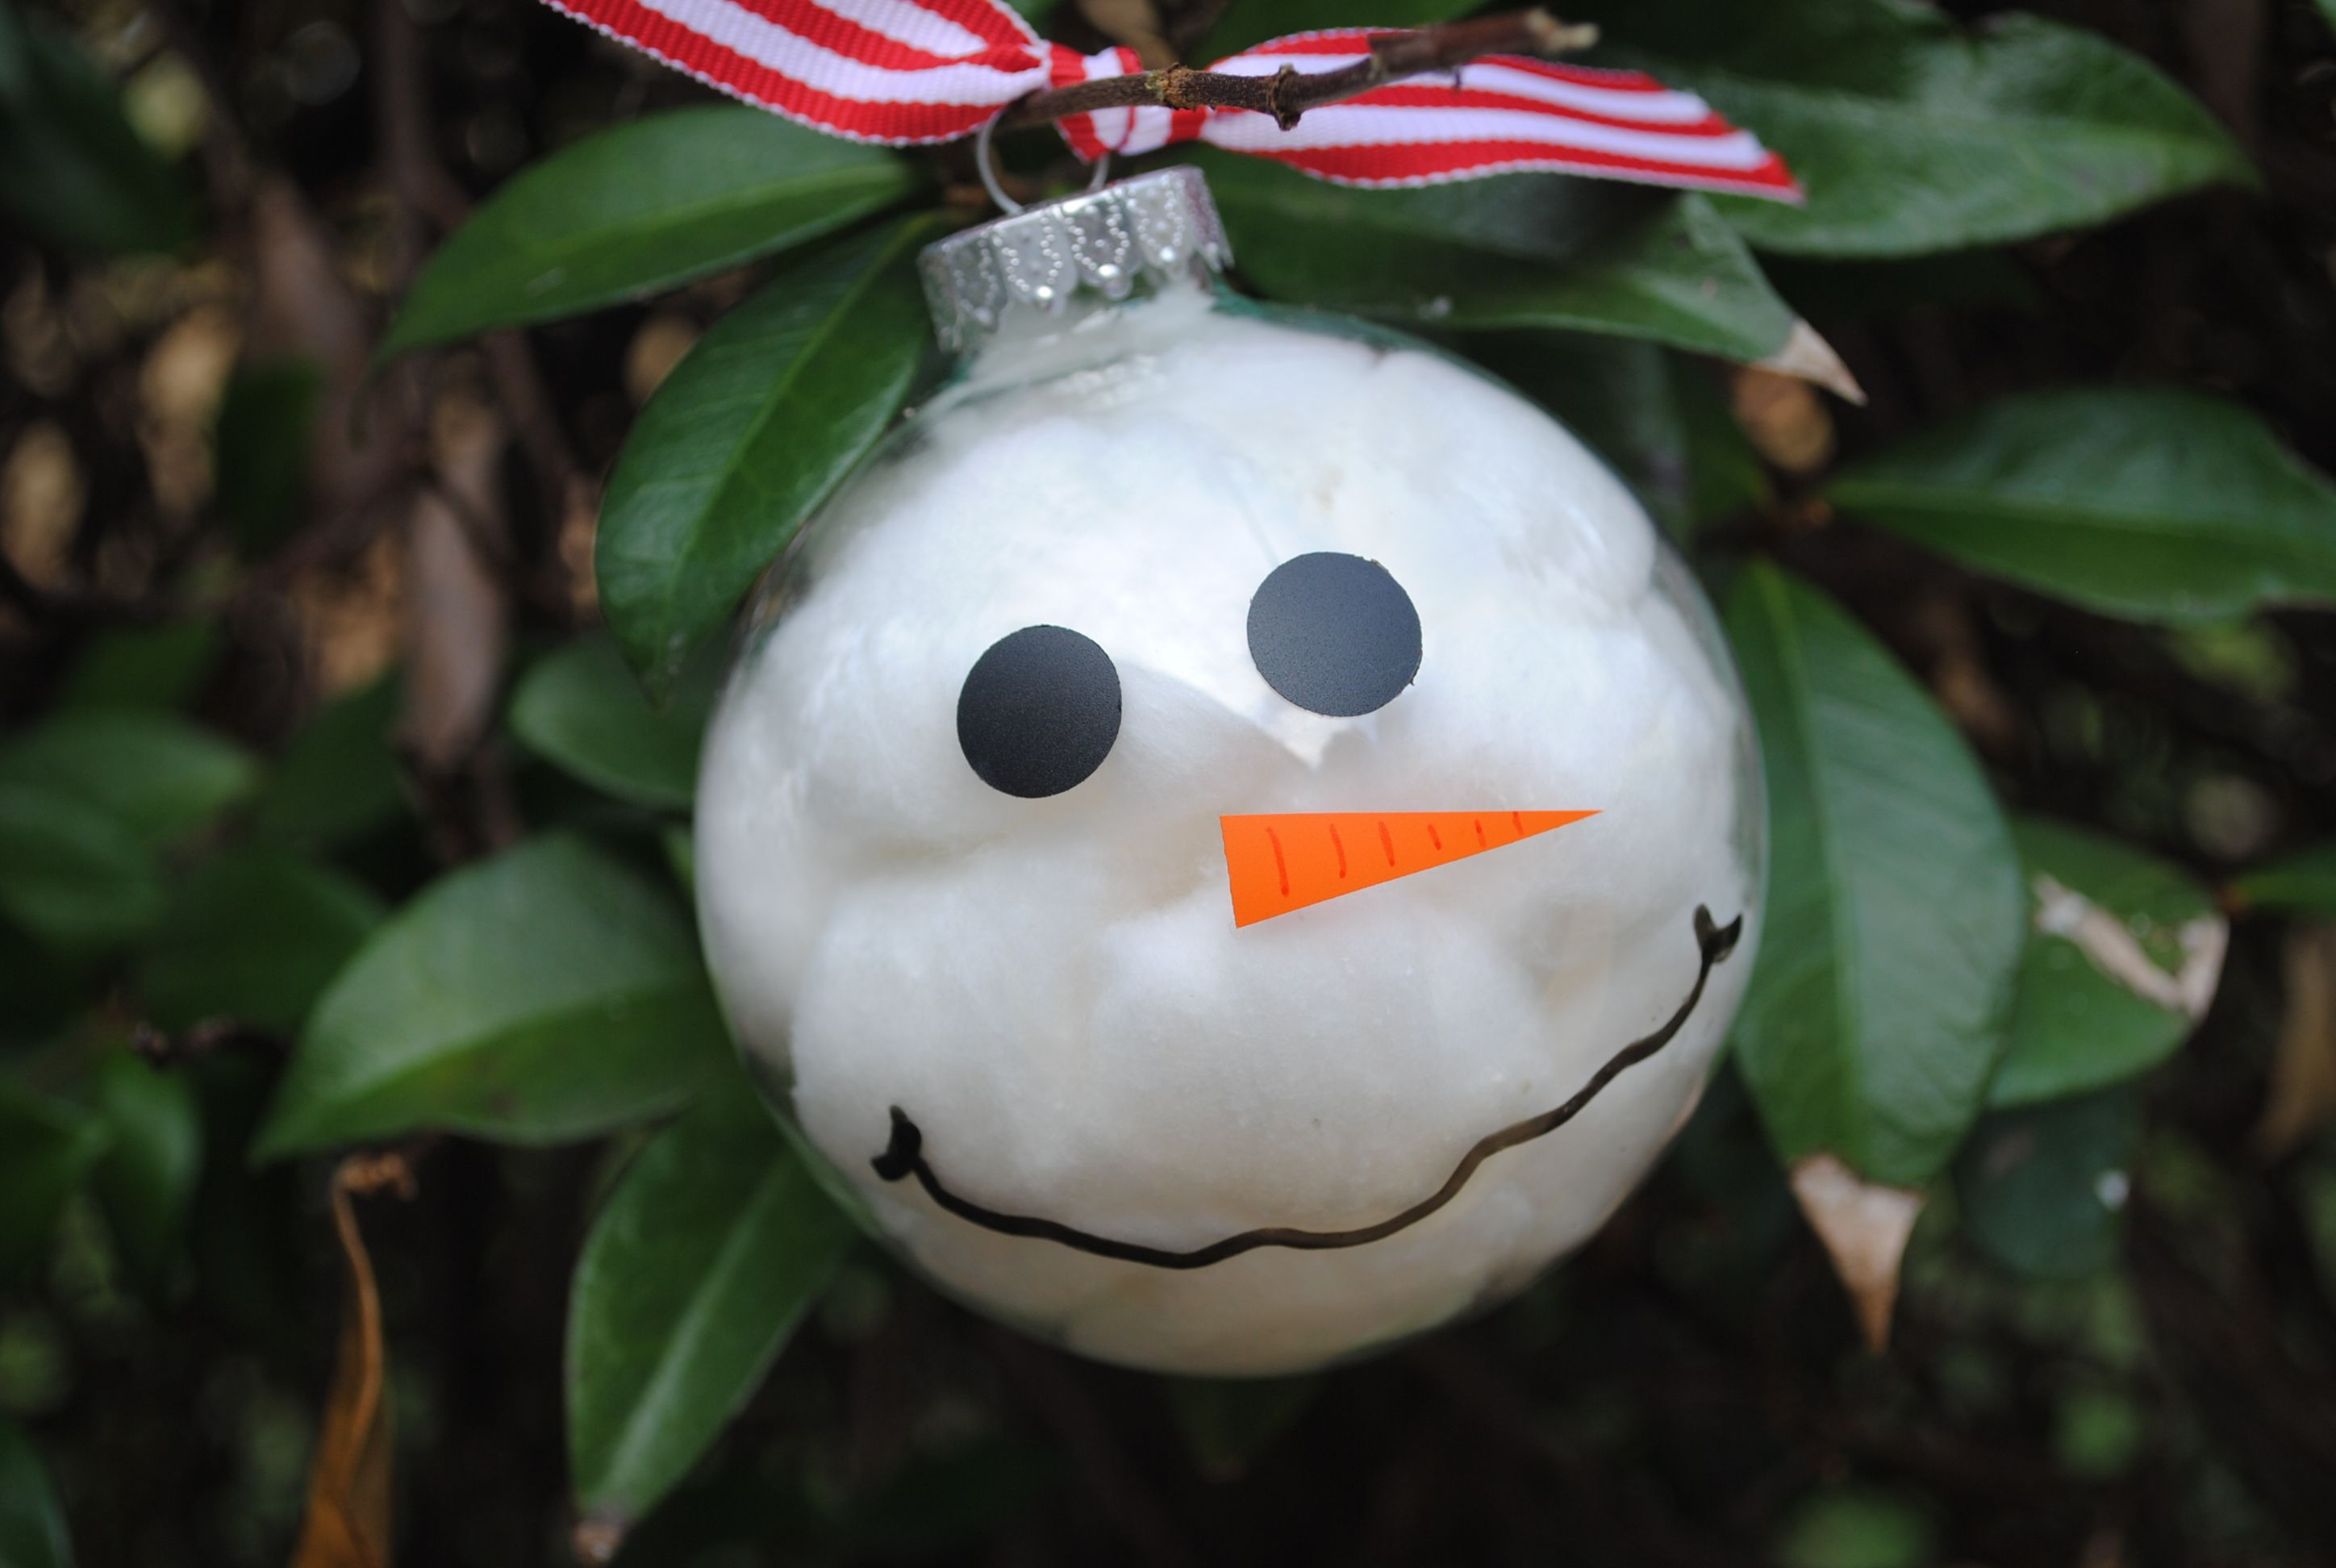 Diy Ornament Fill Clear Glass Ball With Cotton Balls Used Vinyl For Nos Christmas Ball Ornaments Diy Kids Christmas Ornaments Diy Christmas Ornaments Easy